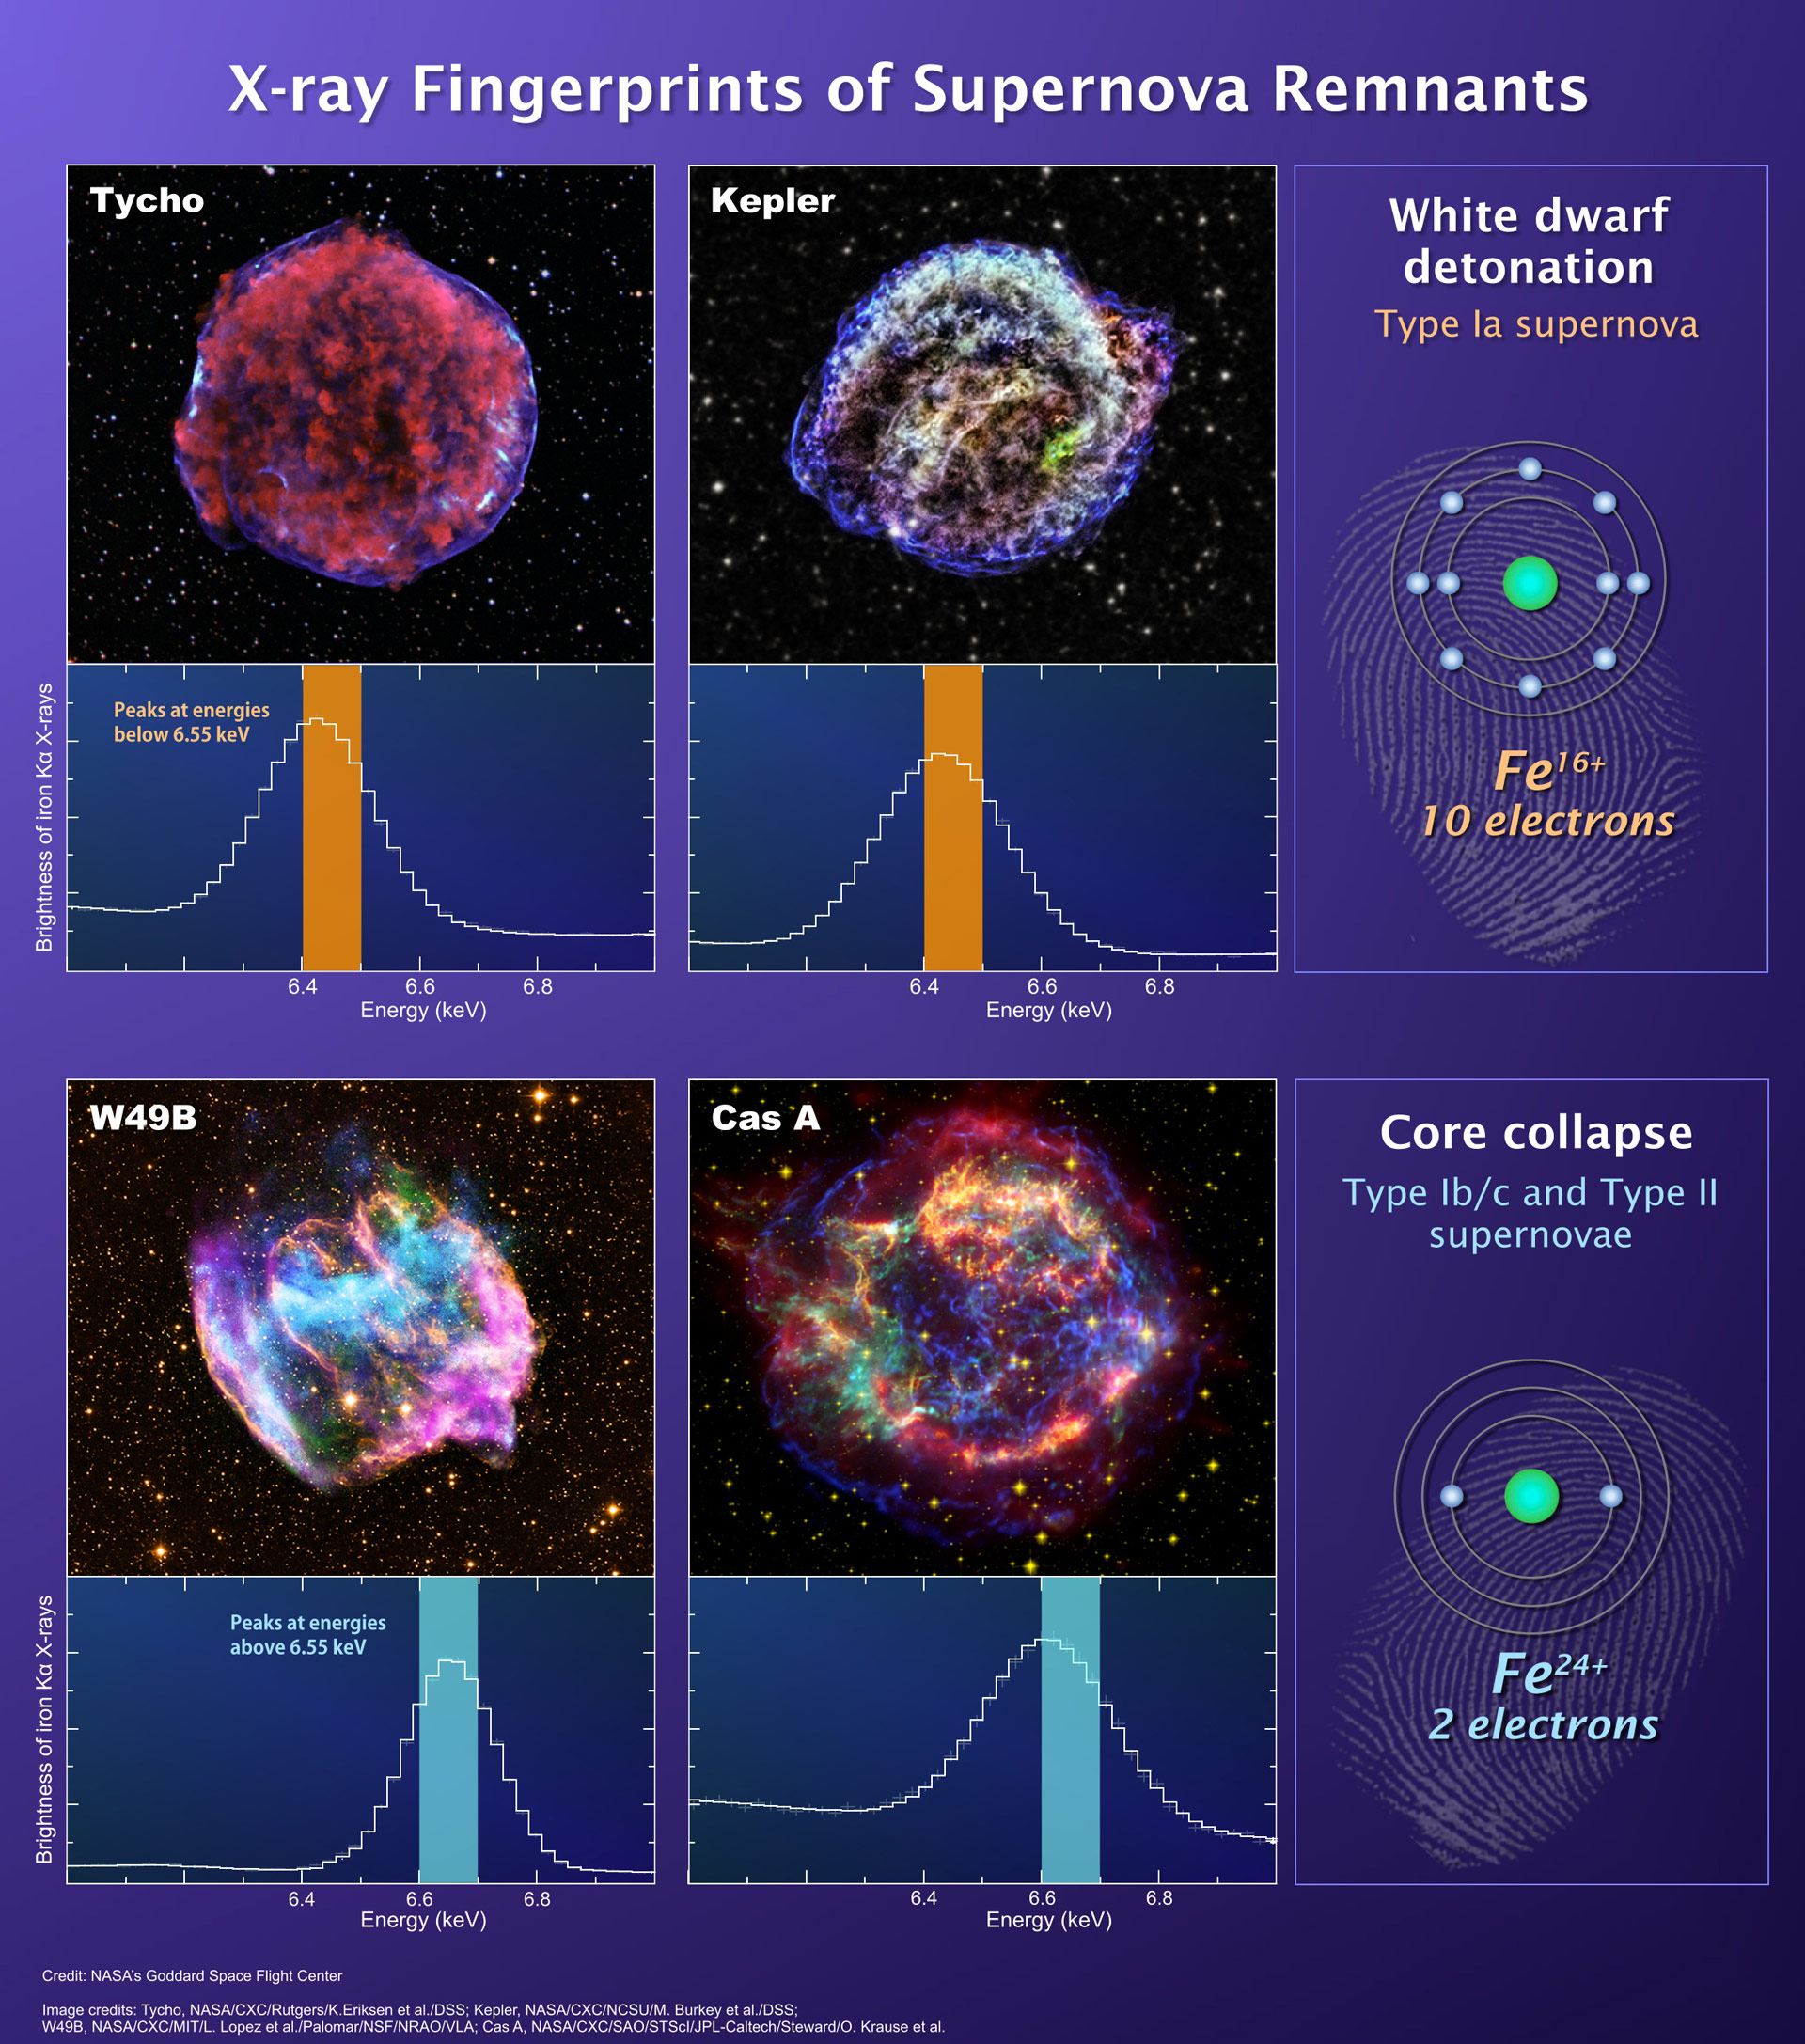 New Technique Provides a Clear and Rapid Means of Classifying Supernova Remnants